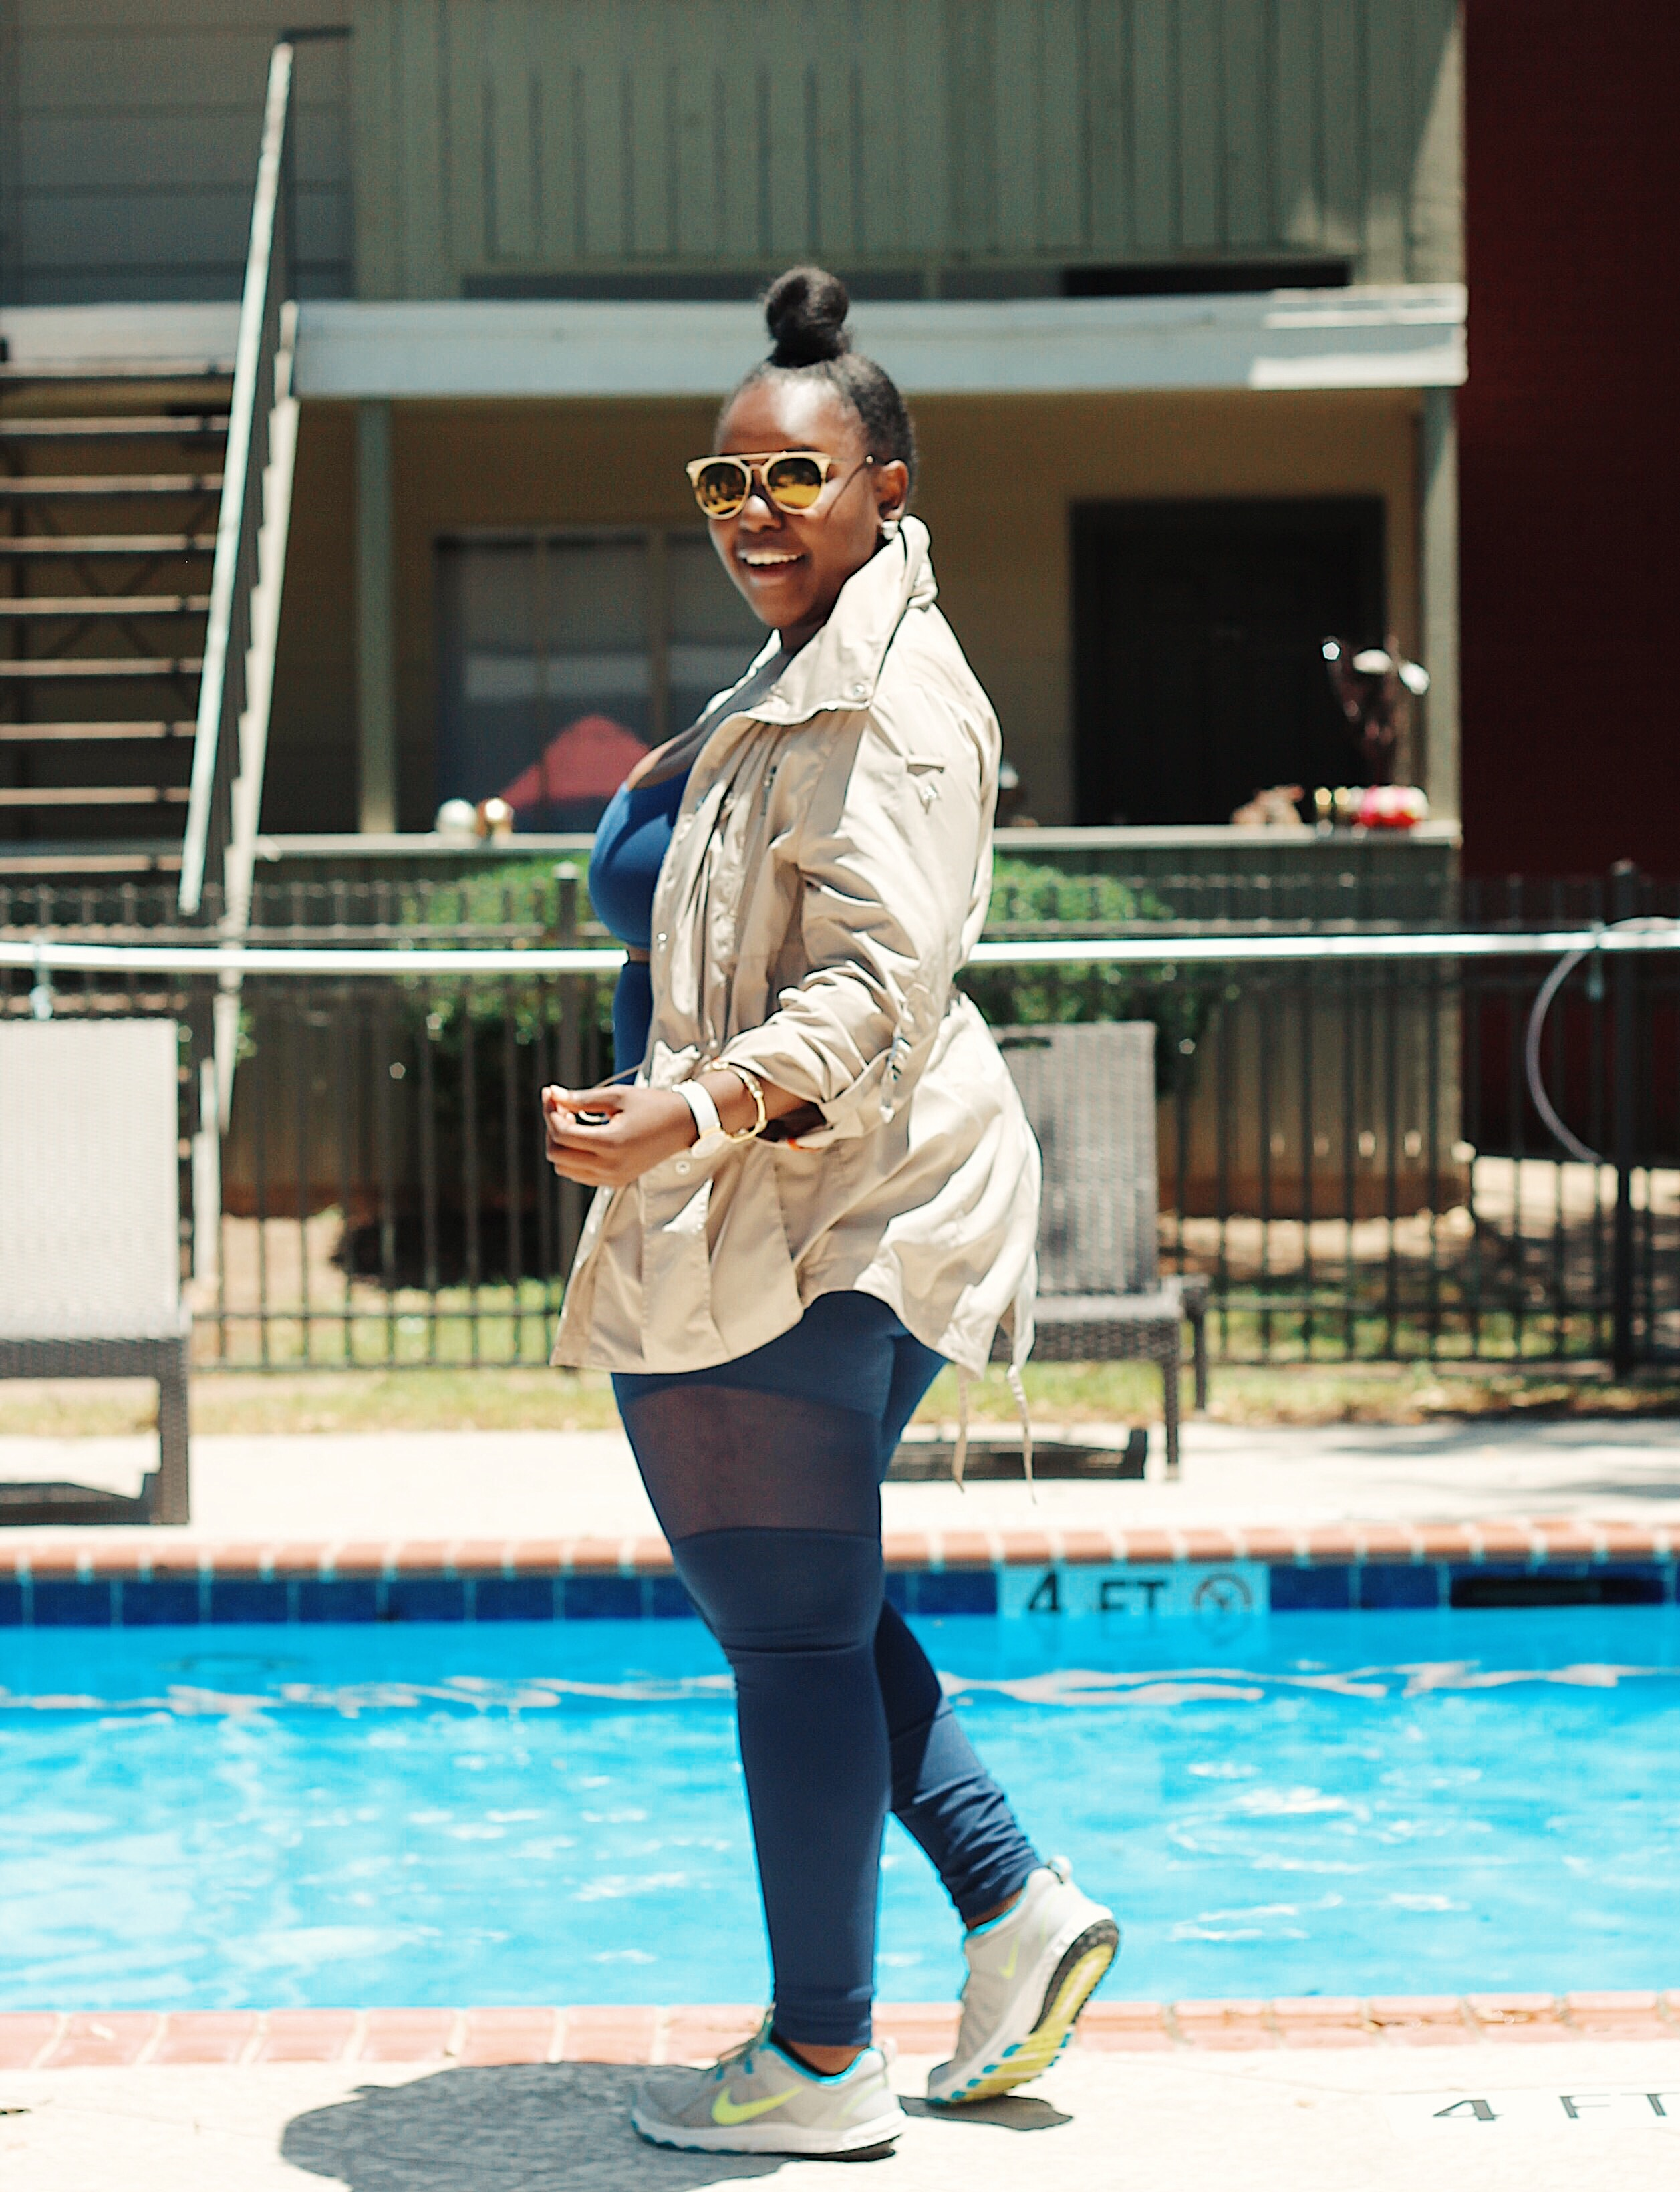 plus size black bloggers, clothes for curvy girls, curvy girl fashion clothing, plus blog, plus size fashion tips, plus size women blog, at fashion blog, plus size high fashion, curvy women fashion, plus blog, curvy girl fashion blog, style plus curves, plus size fashion instagram, curvy girl blog, bbw blog, plus size street fashion, plus size beauty blog, plus size fashion ideas, curvy girl summer outfits, plus size fashion magazine, plus fashion bloggers, boohoo, rebdolls bodycon maxi dresses, plus size athleisure